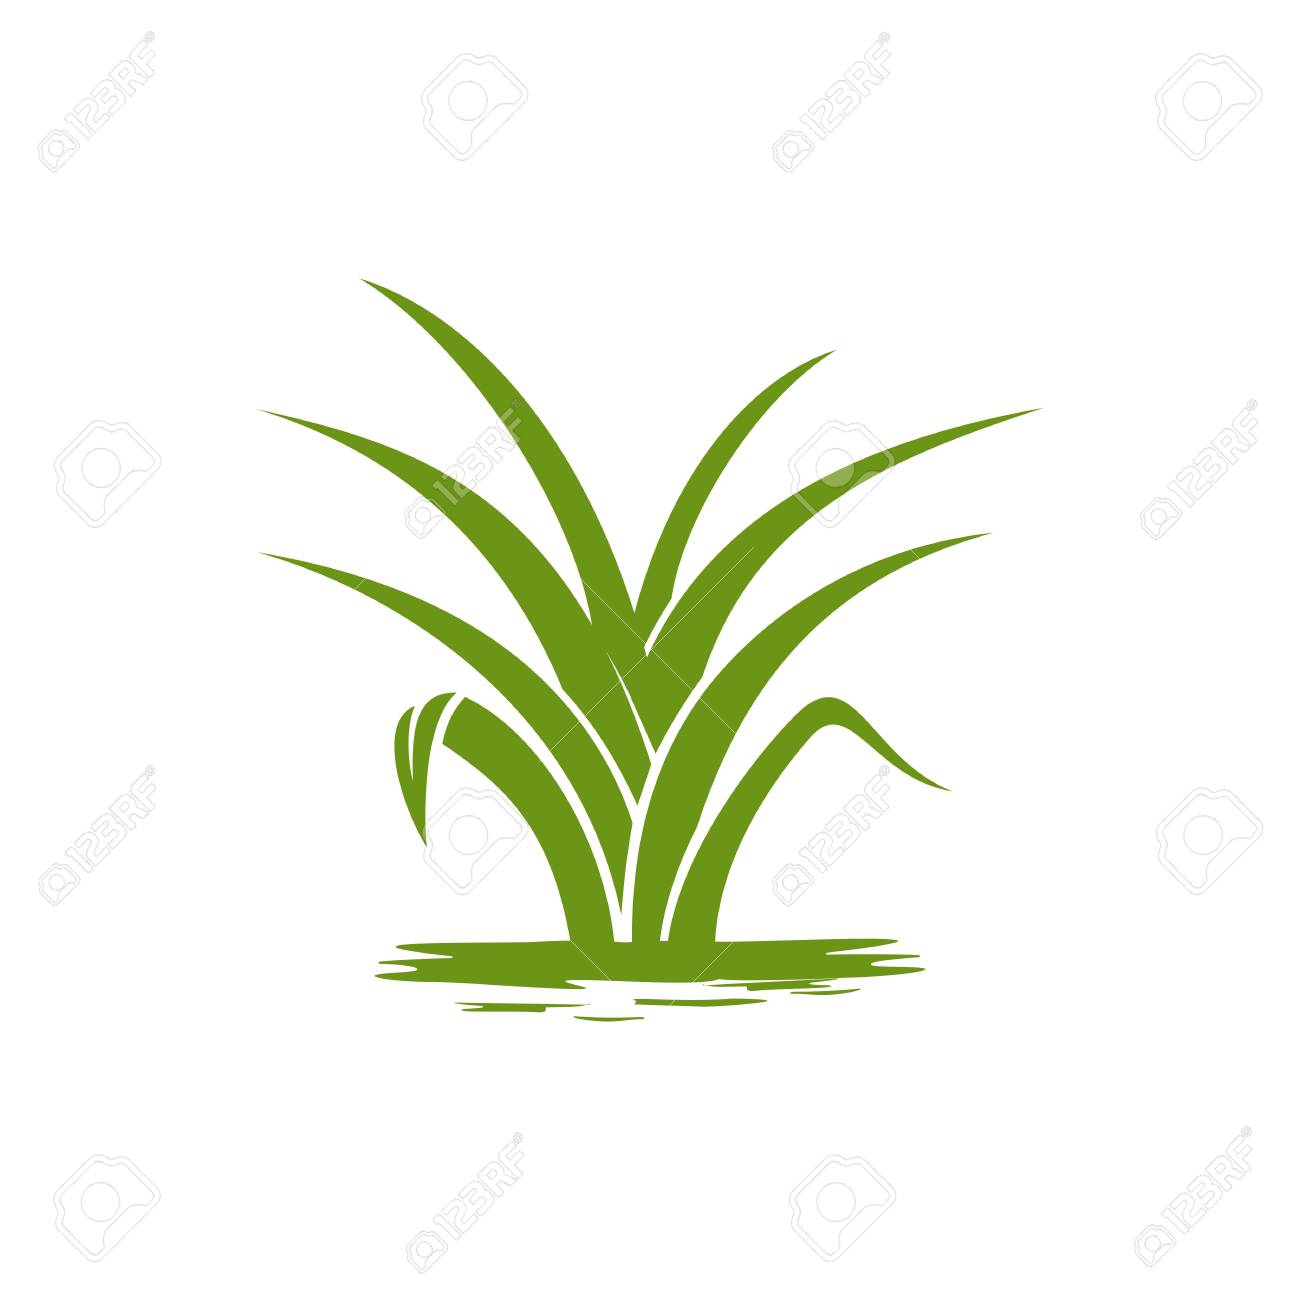 green nature logo template grass vector royalty free cliparts vectors and stock illustration image 94114974 123rf com